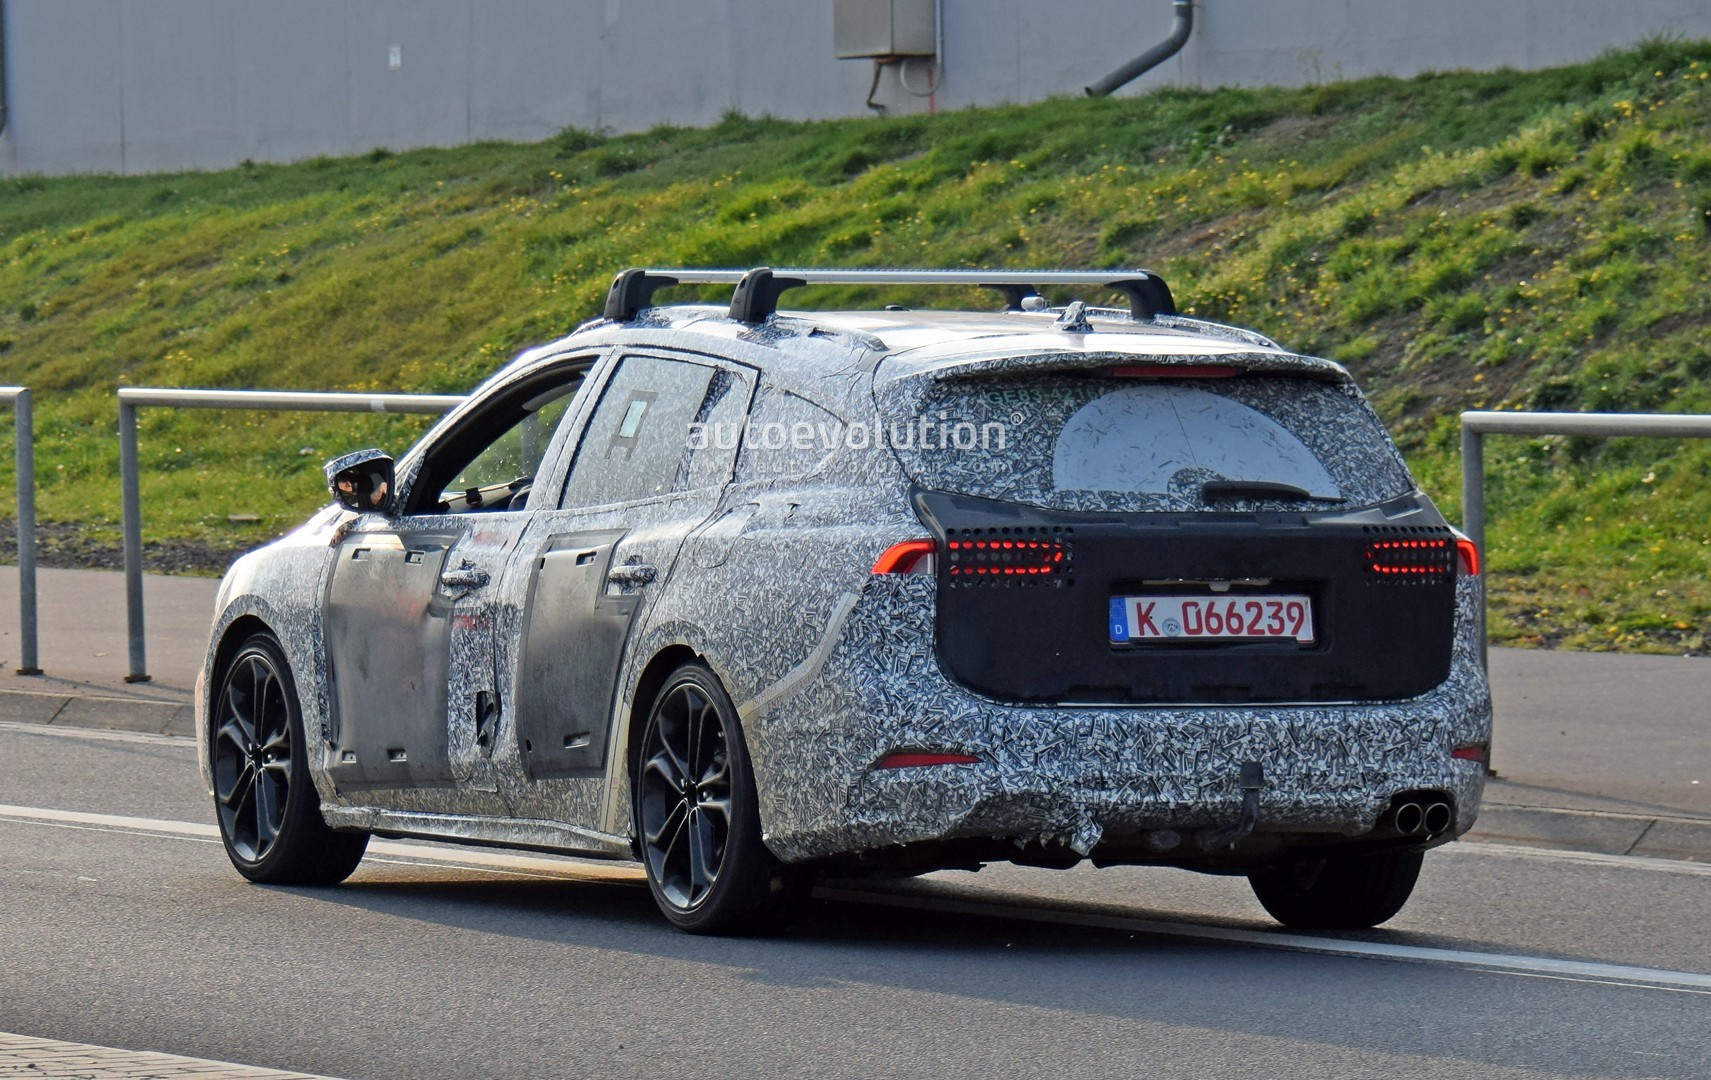 2019 Ford Focus ST Wagon Filmed Testing at the Nurburgring - autoevolution